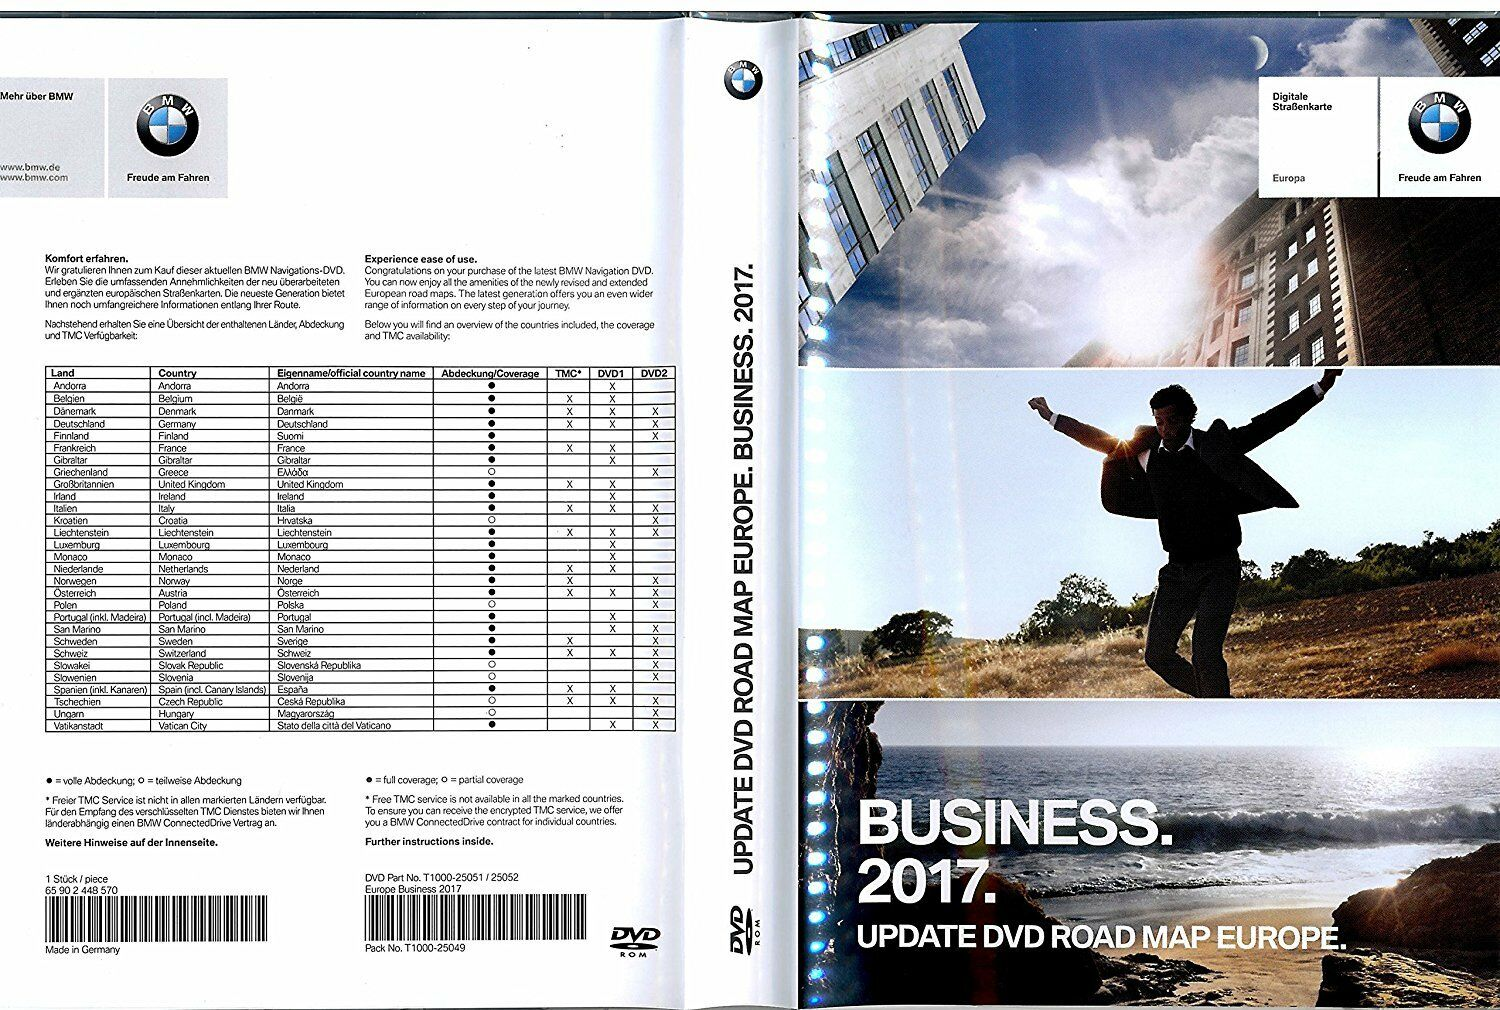 Road Map Of Germany 2017.Bmw Navigation Road Map Europe Business 2017 Update Dvd 65902448570 2448570